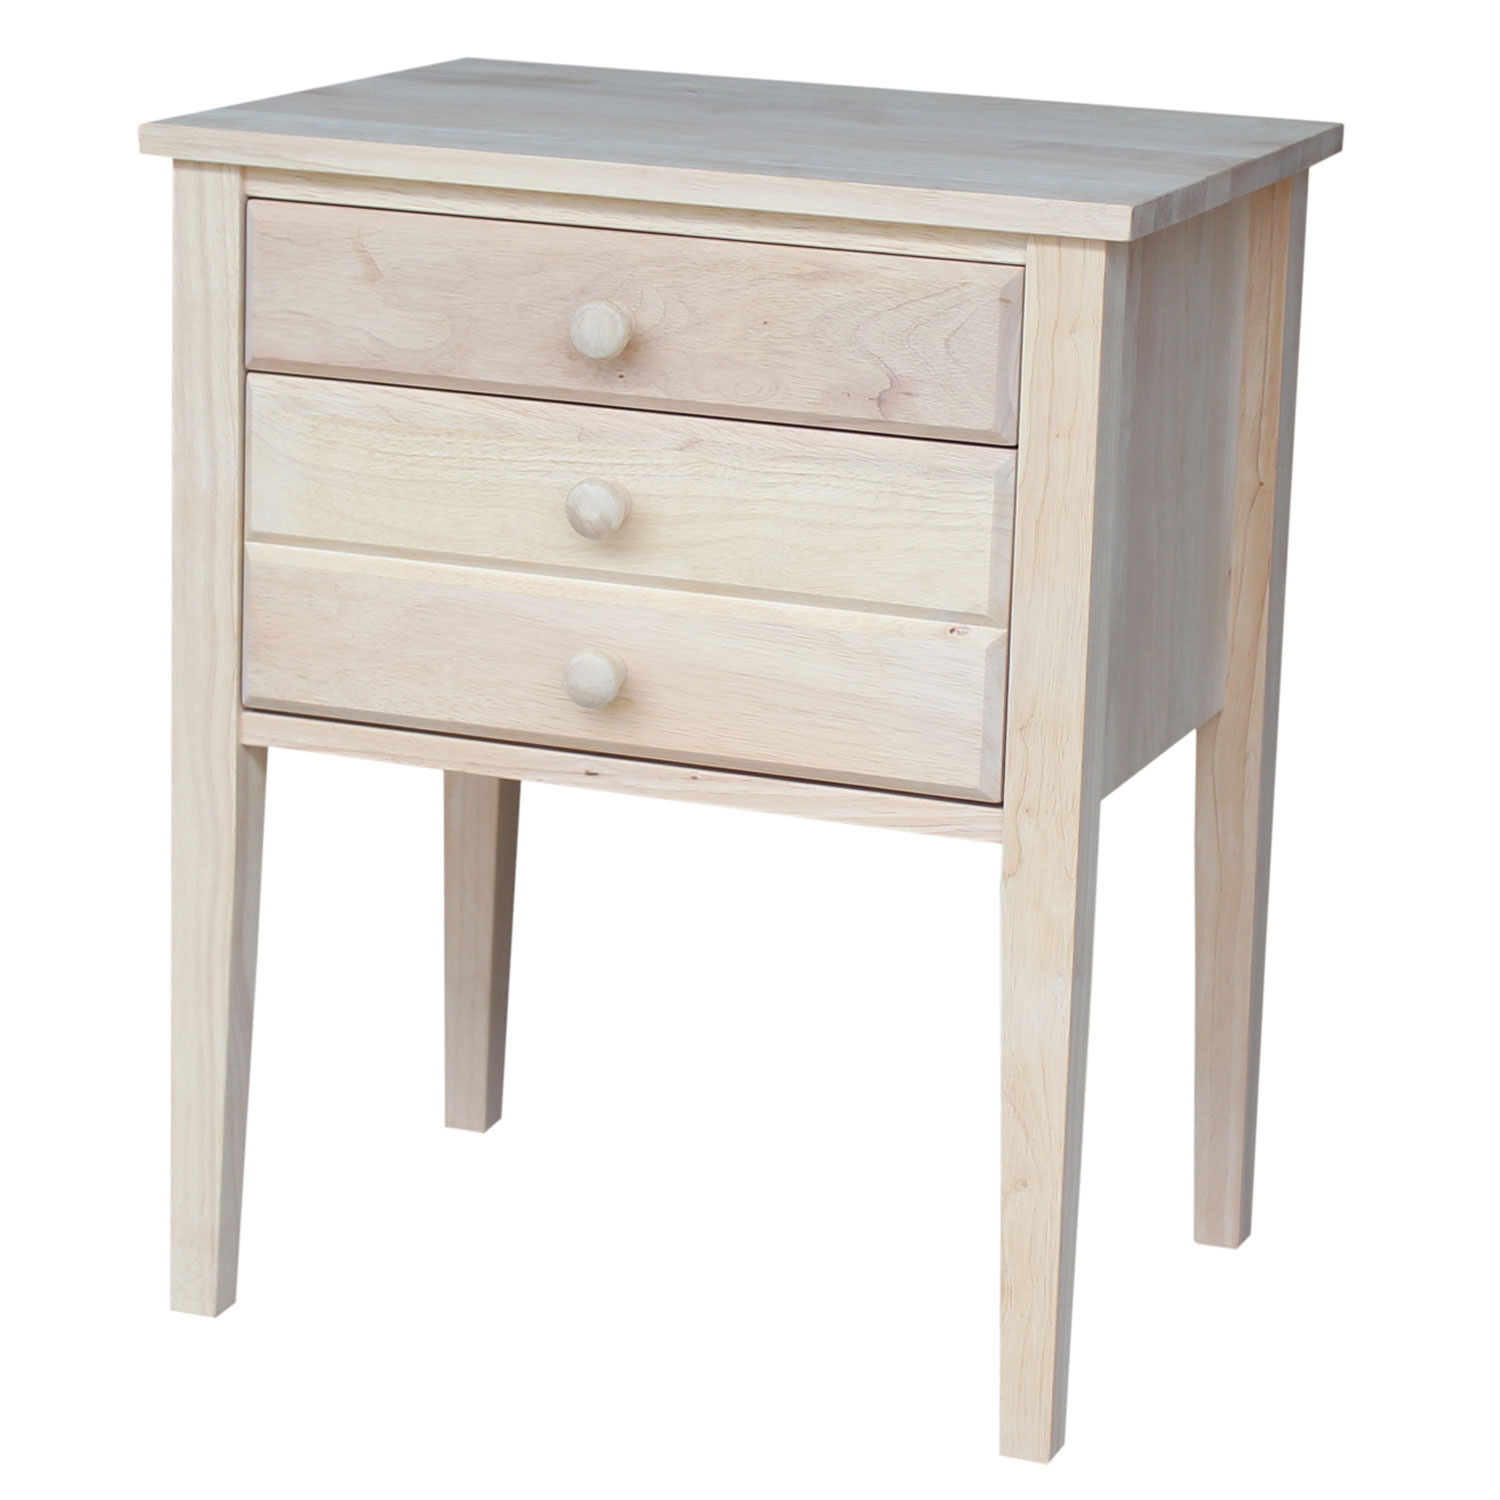 surprising small whitewash accent table wood lamps legs rooster and lamp wooden washed dining top white diy set room whitewashed tray chair kitchen oak round full size half west